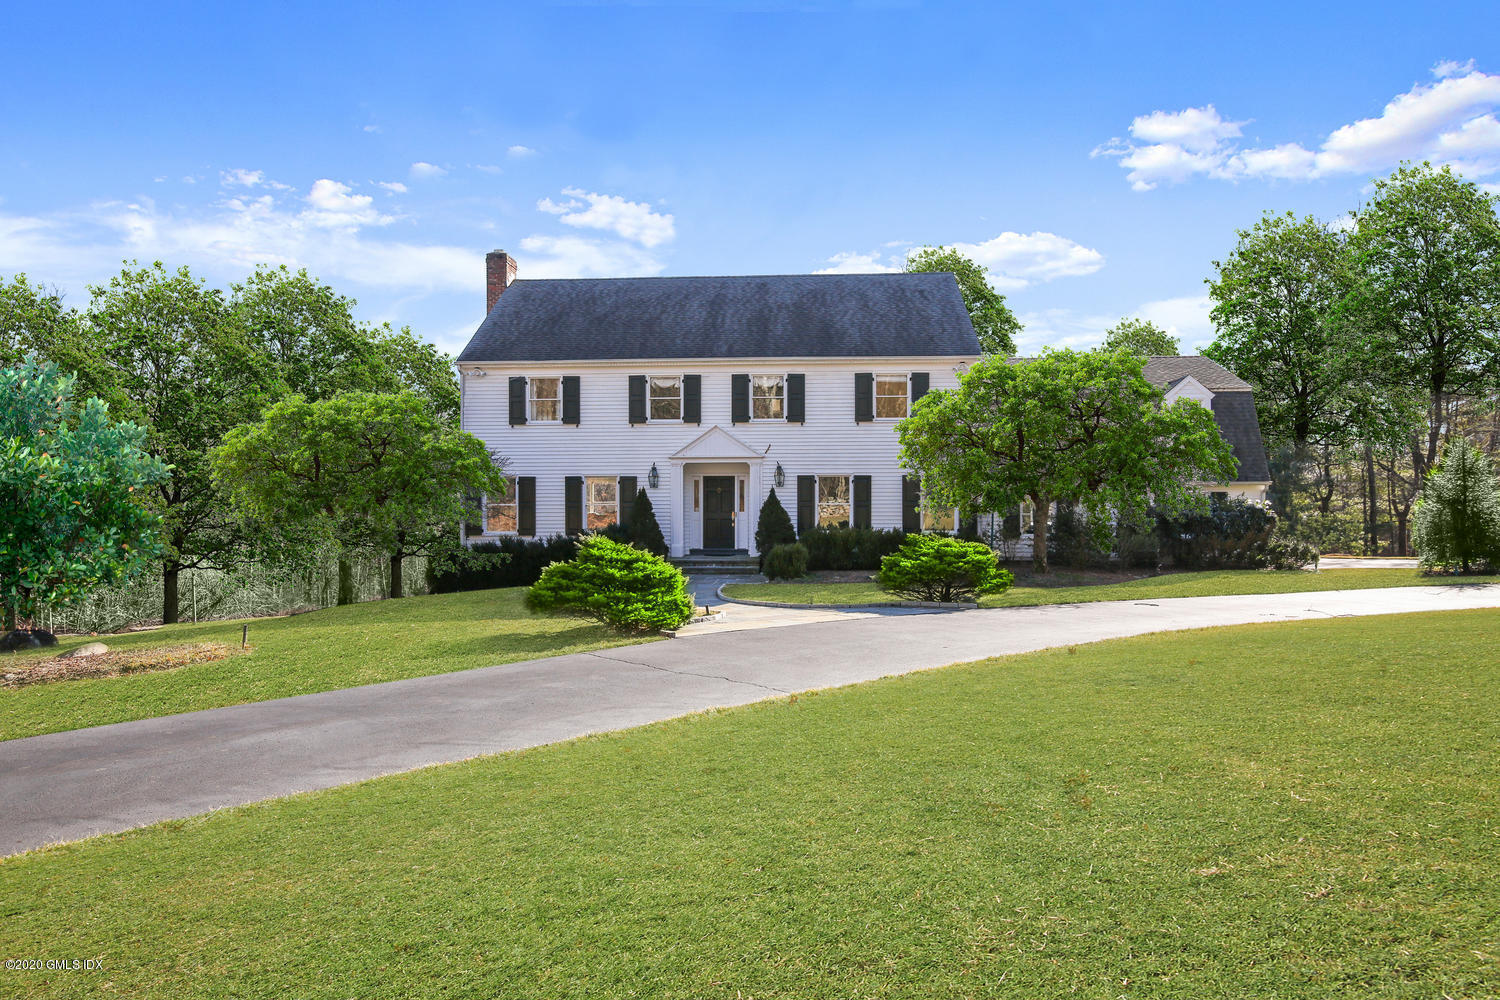 16 Tod Lane,Greenwich,Connecticut 06831,6 Bedrooms Bedrooms,4 BathroomsBathrooms,Single family,Tod,108657